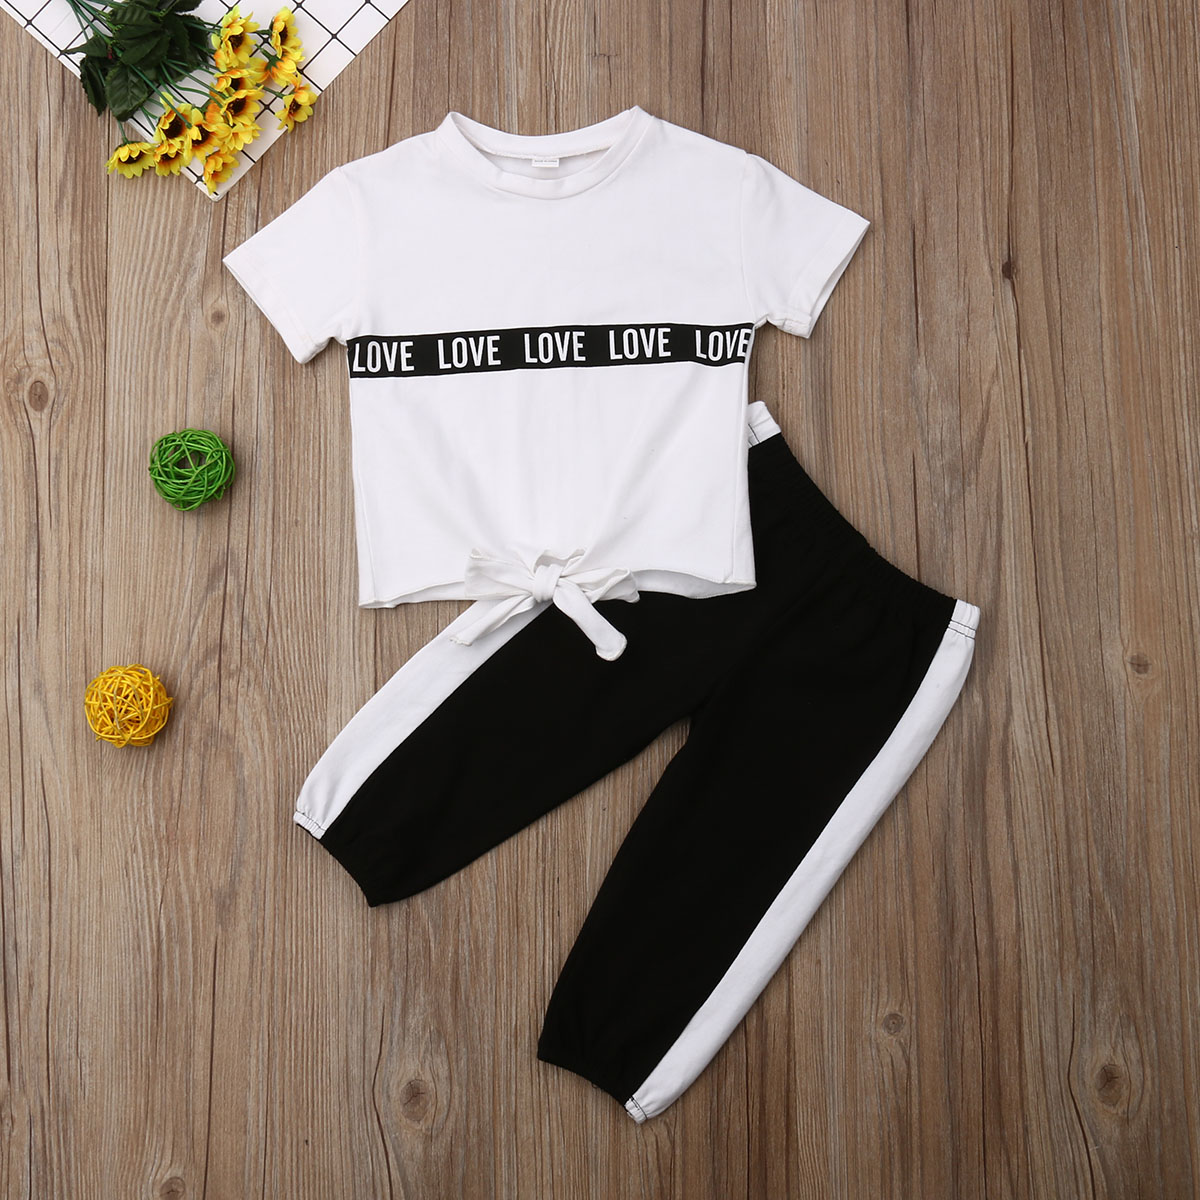 Pudcoco Summer Toddler Baby Girl Clothes Cotton T-Shirt Tops Long Pants 2Pcs Outfits Casual Tracksuit Set